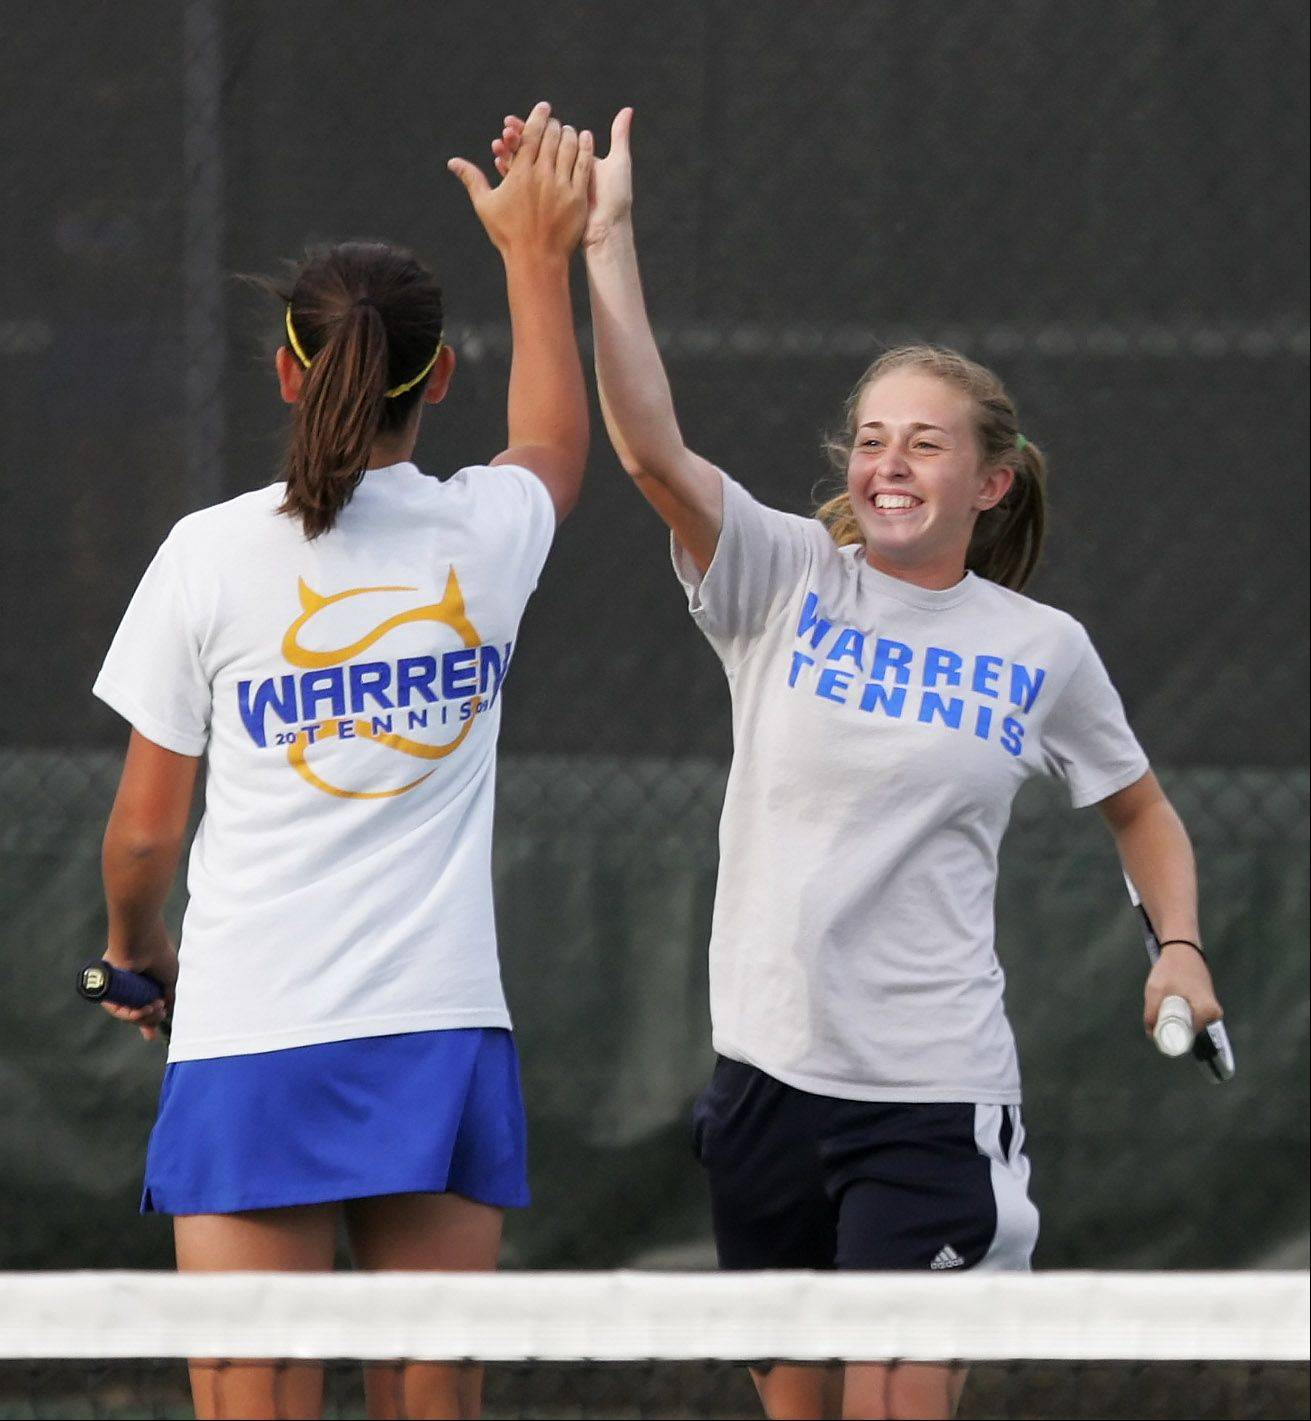 Warren doubles player Courtney Sunday, right, gives her partner, Mikayla Schultz, a high five after a point against Carmel Monday in Mundelein.